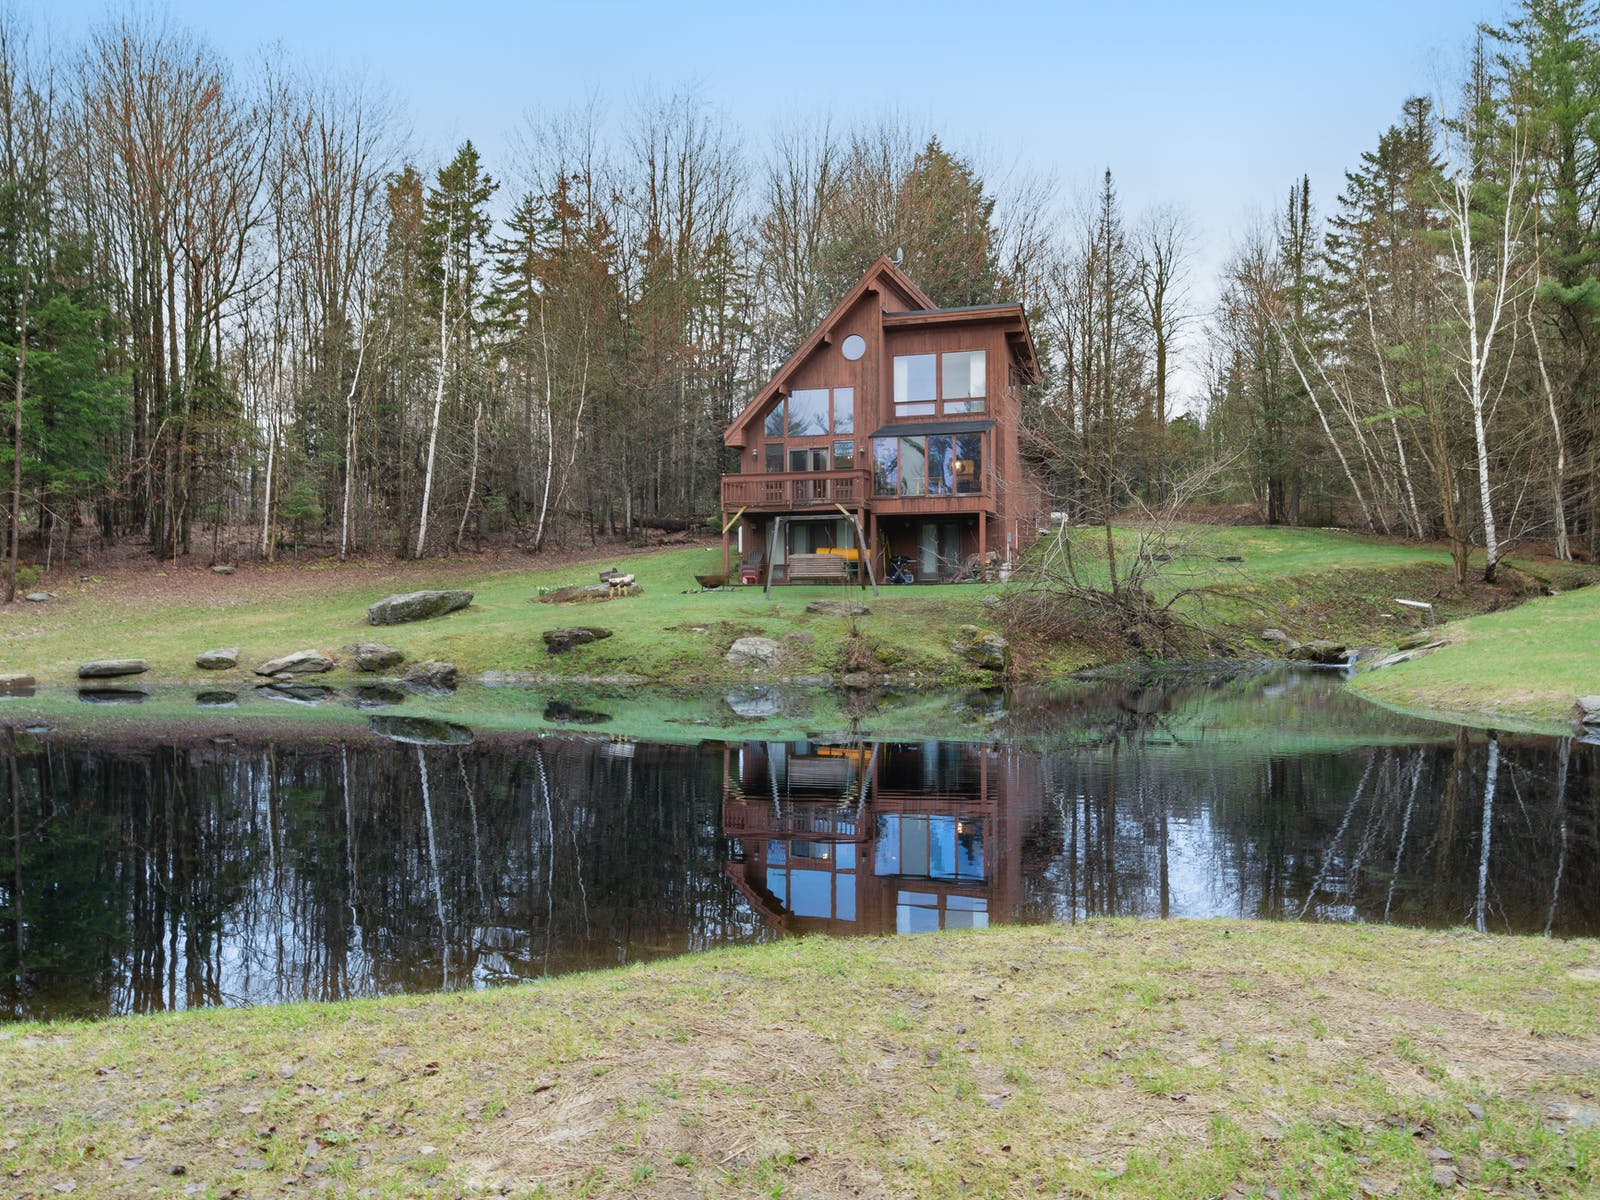 Vacation rental in Stowe, VT surrounded by woods and pond